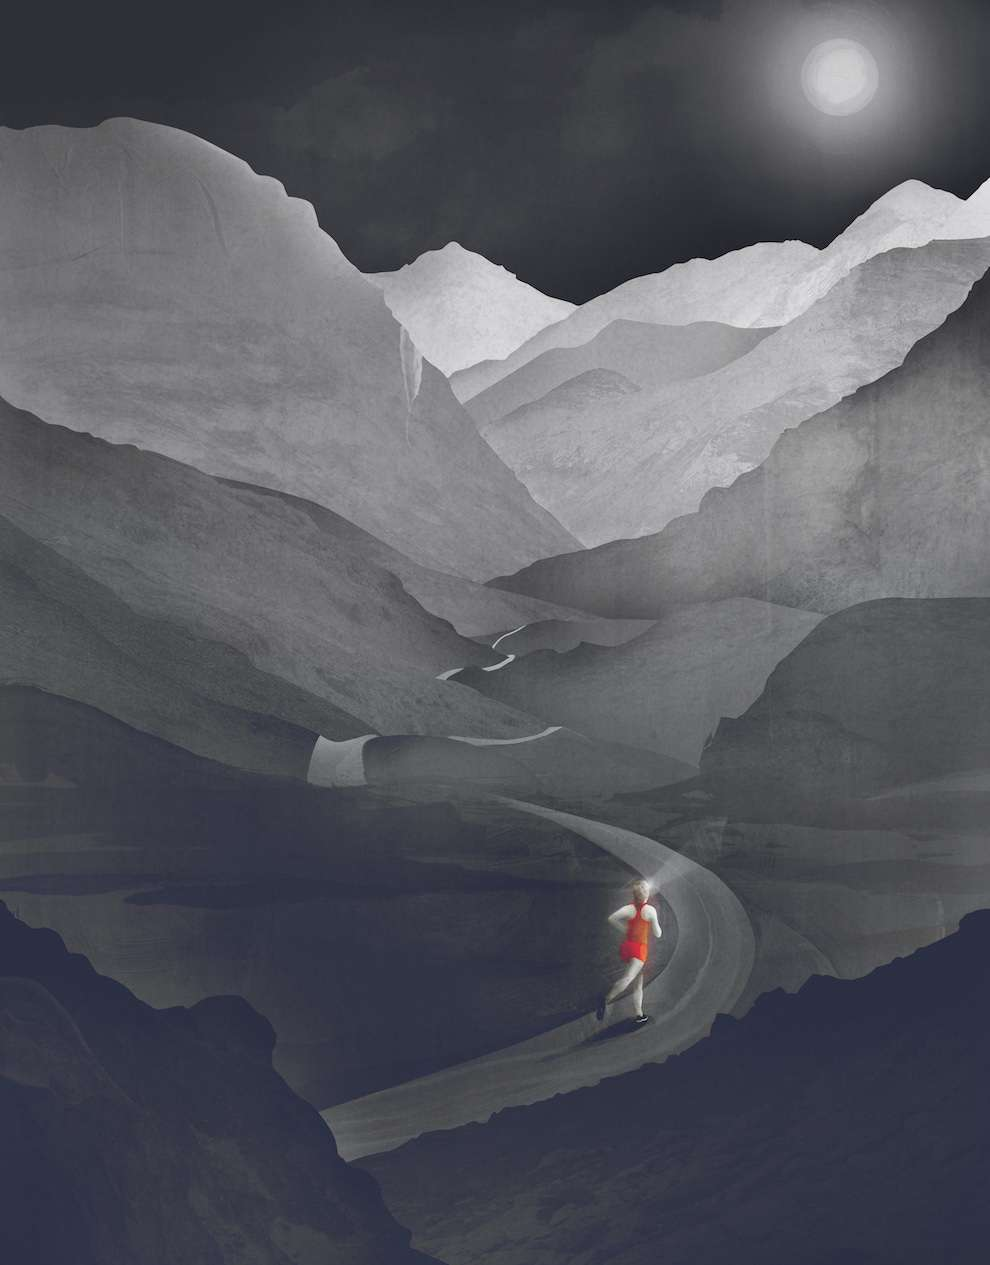 Darren Hopes, Greyscale digital painterly illustration of a women running through the mountains